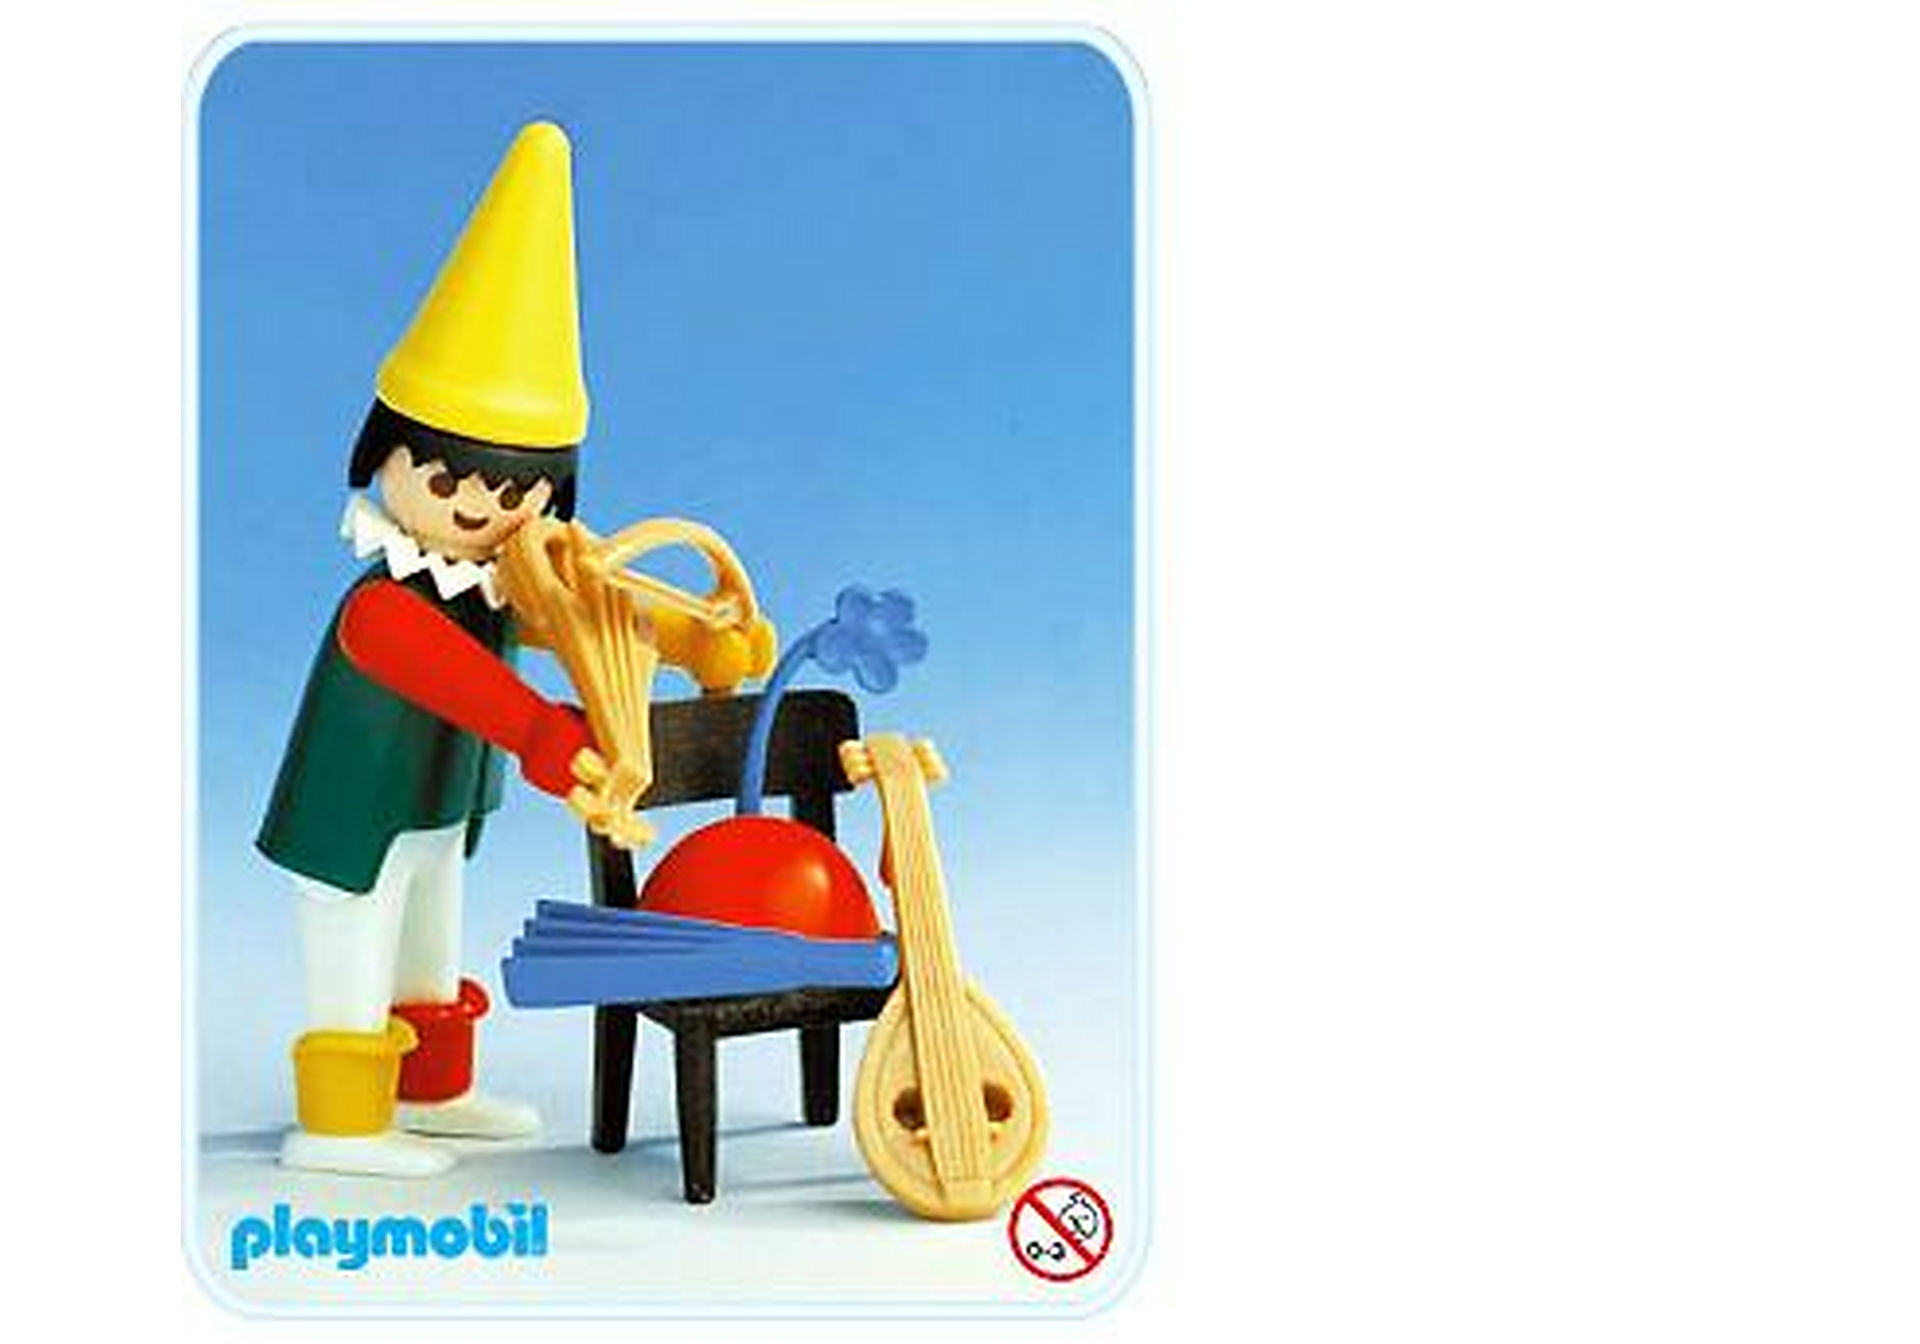 http://media.playmobil.com/i/playmobil/3390-A_product_detail/Clown de cirque / chaise